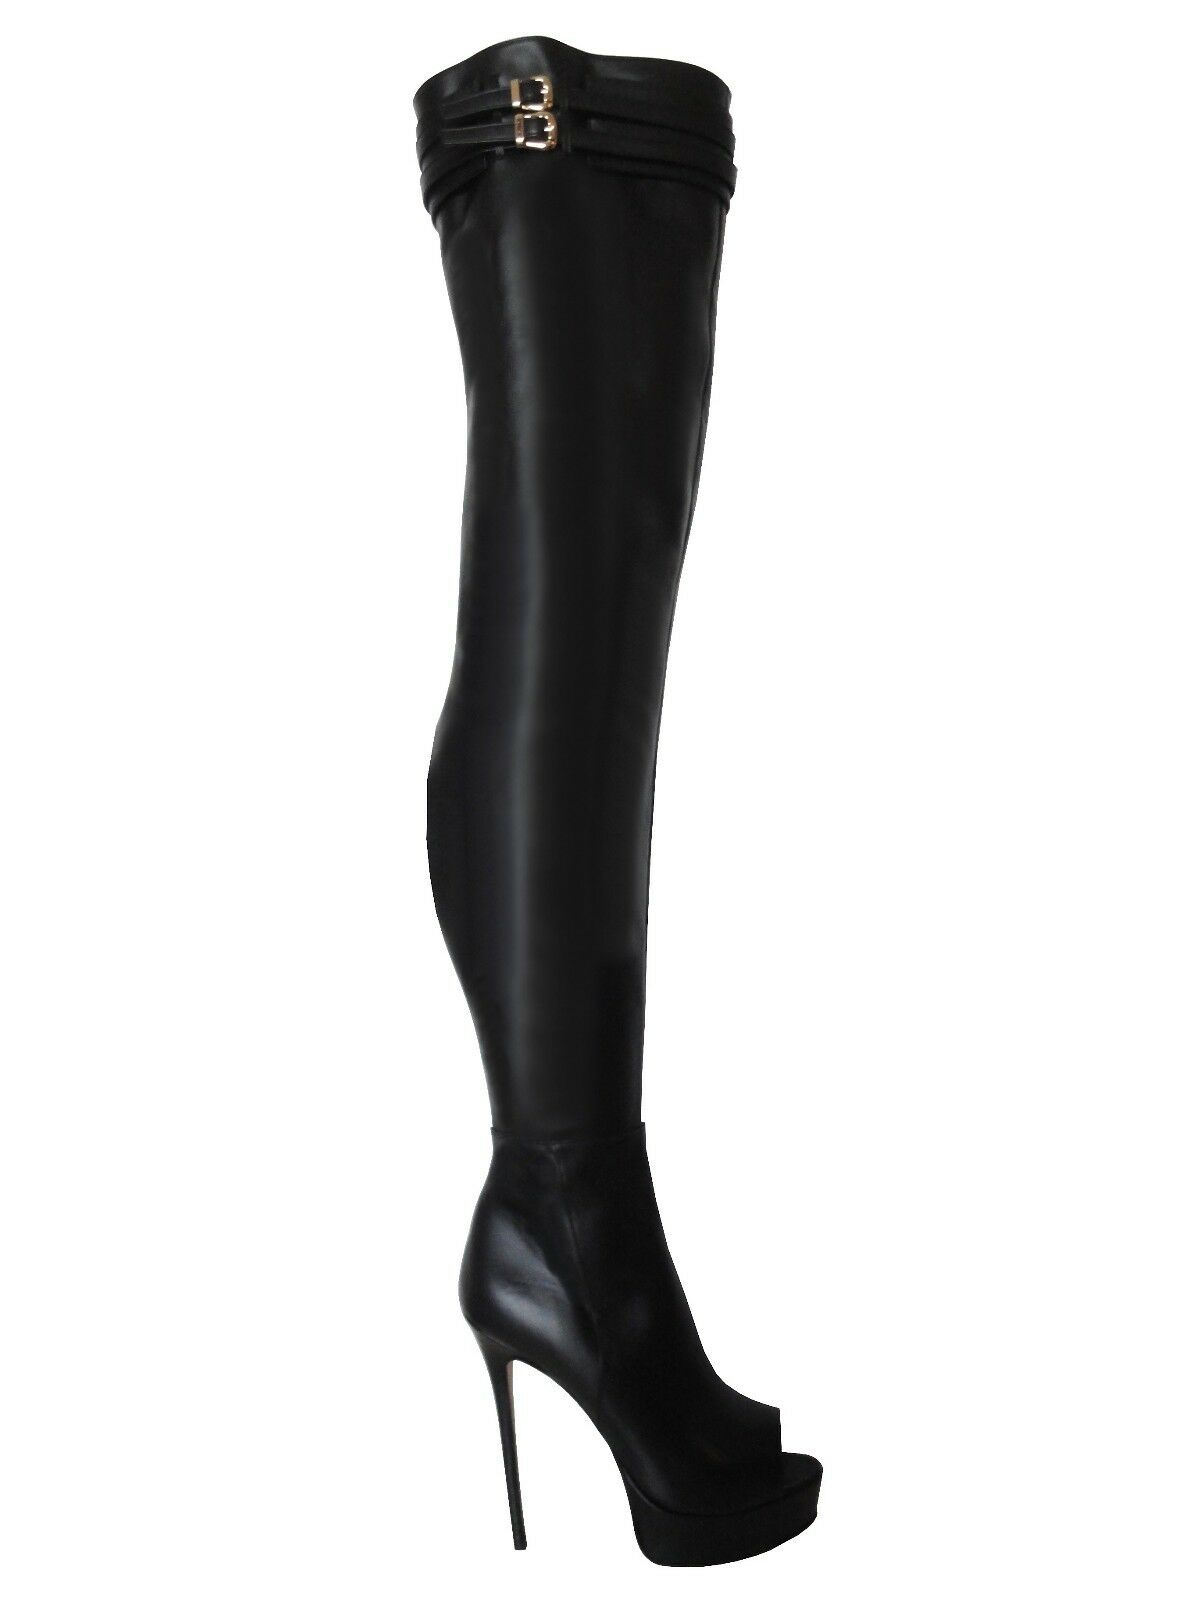 CQ COUTURE PLATFORM PEEP TOE OVERKNEE BOOTS STIEFEL BOOTS BELT BLACK BLACK 36